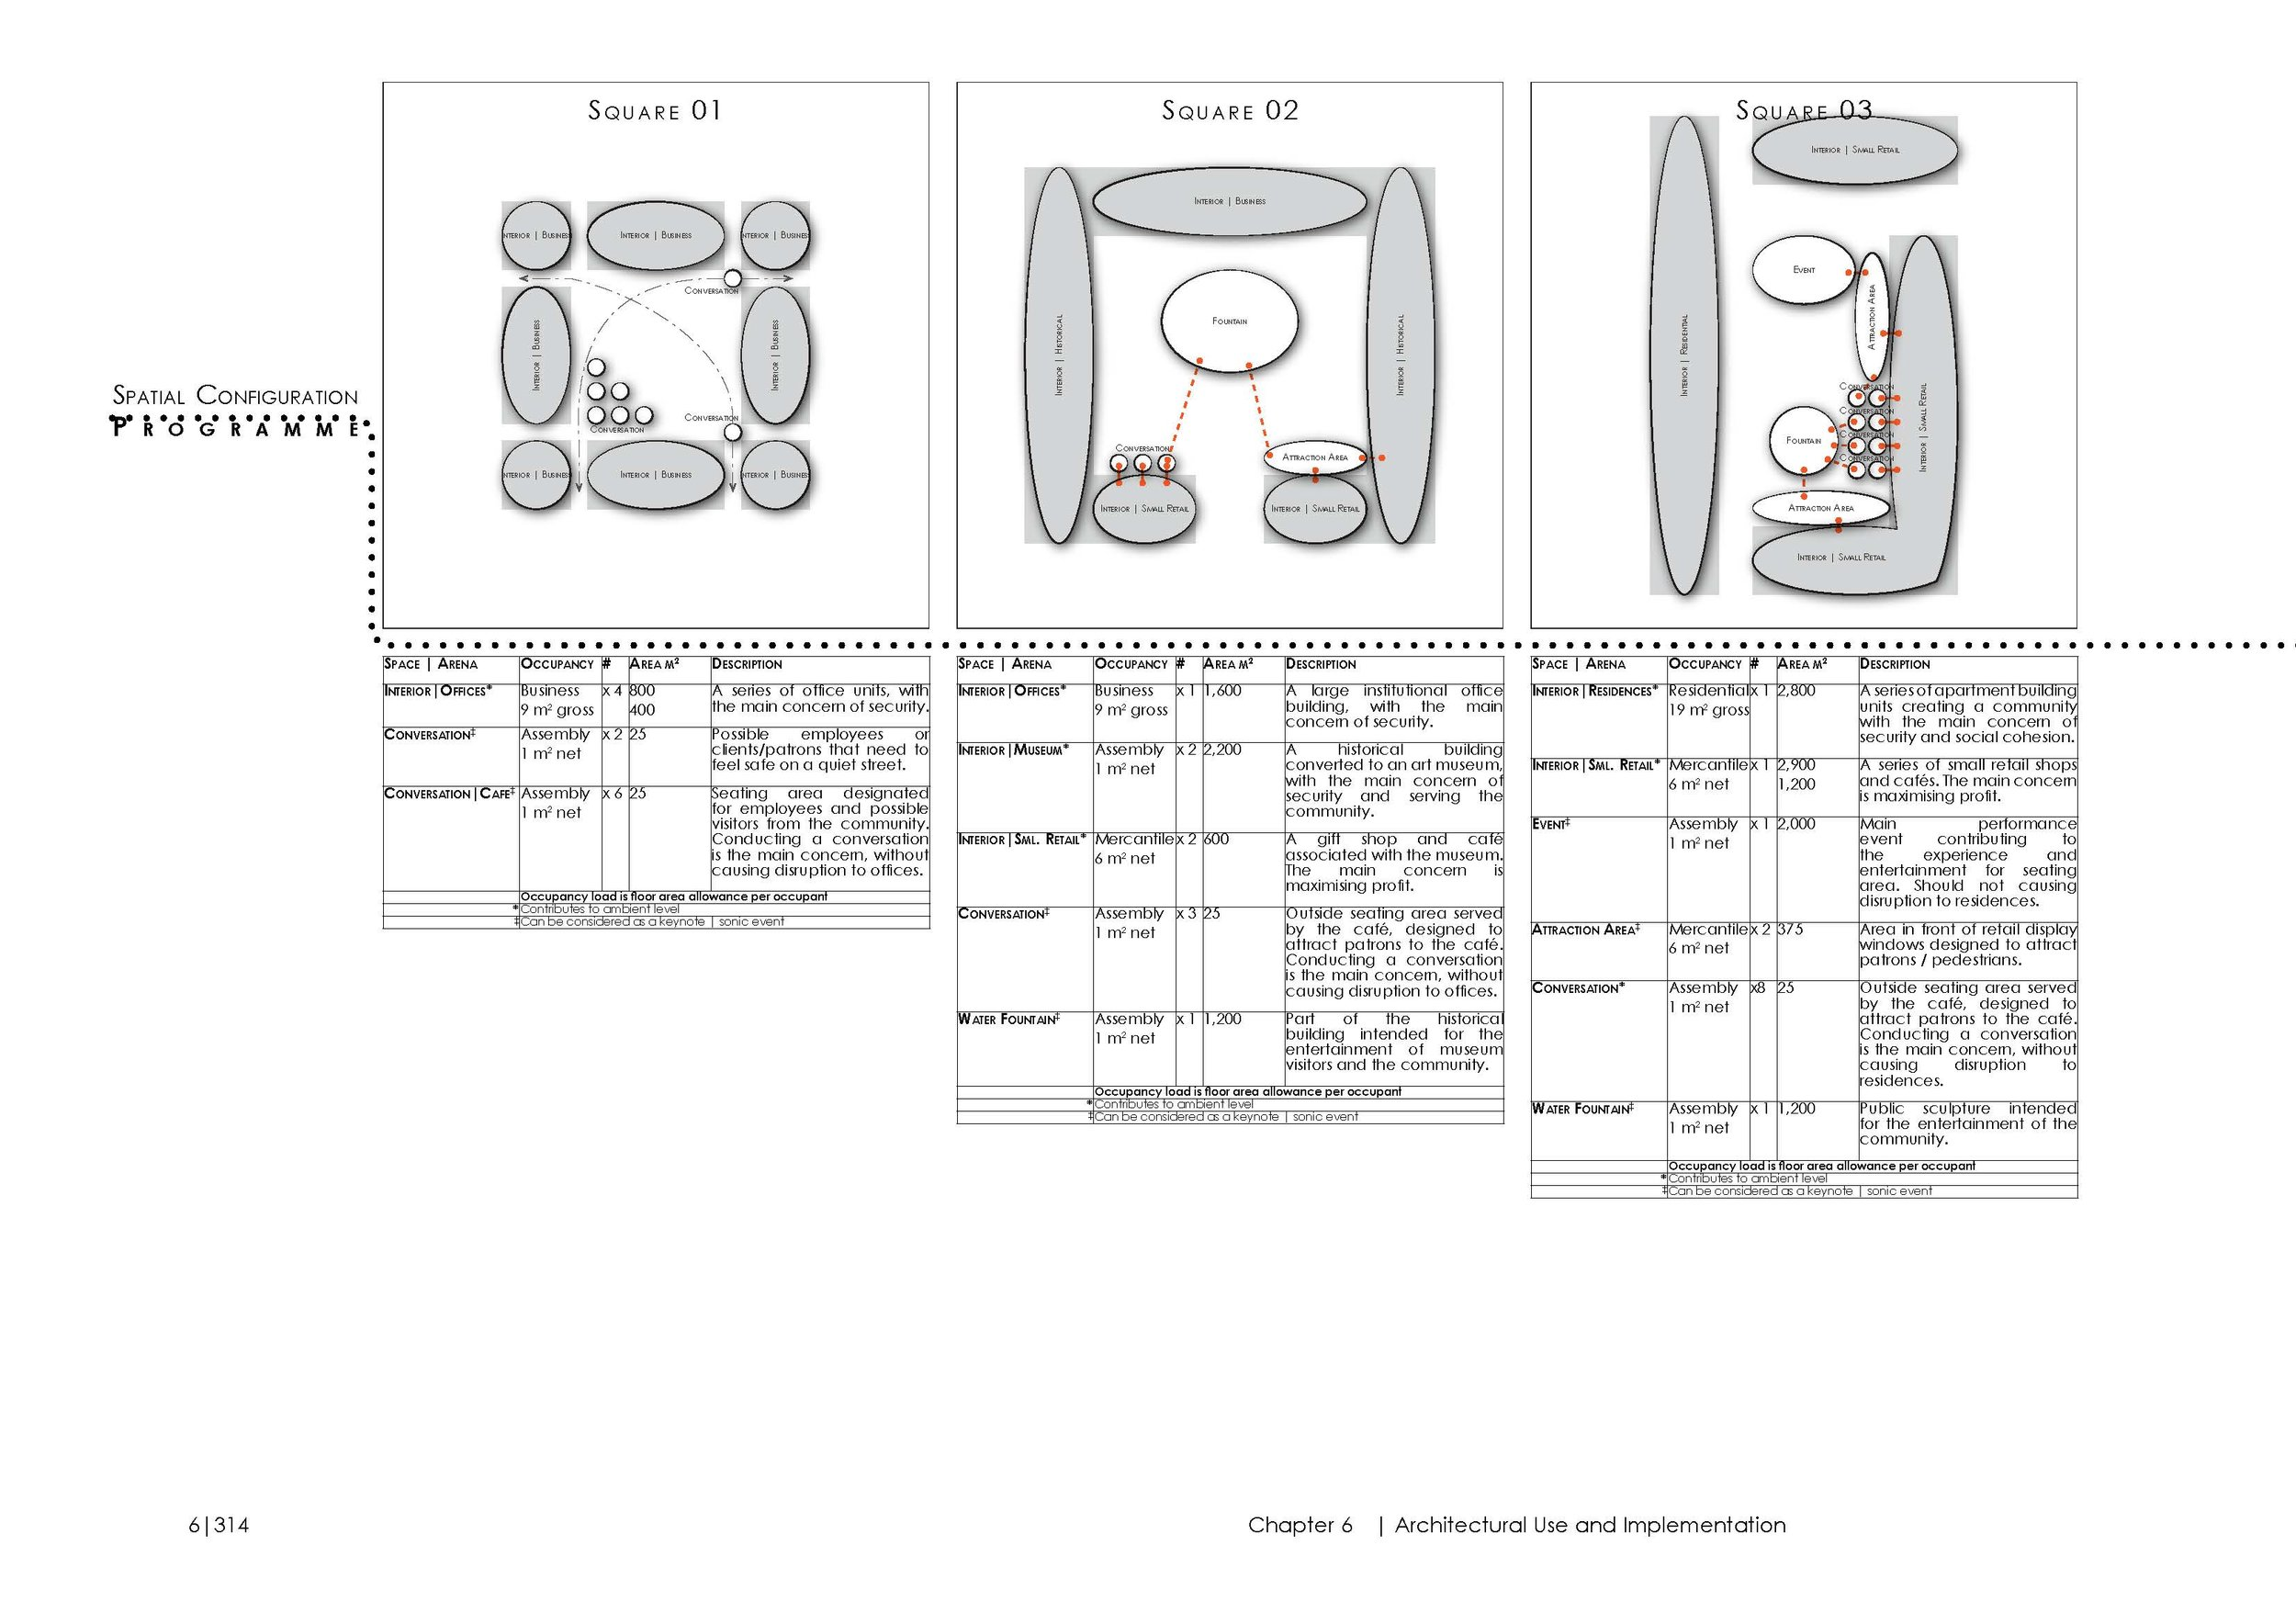 16.03.03_Thesis_01_Interactive_Page_350.jpg